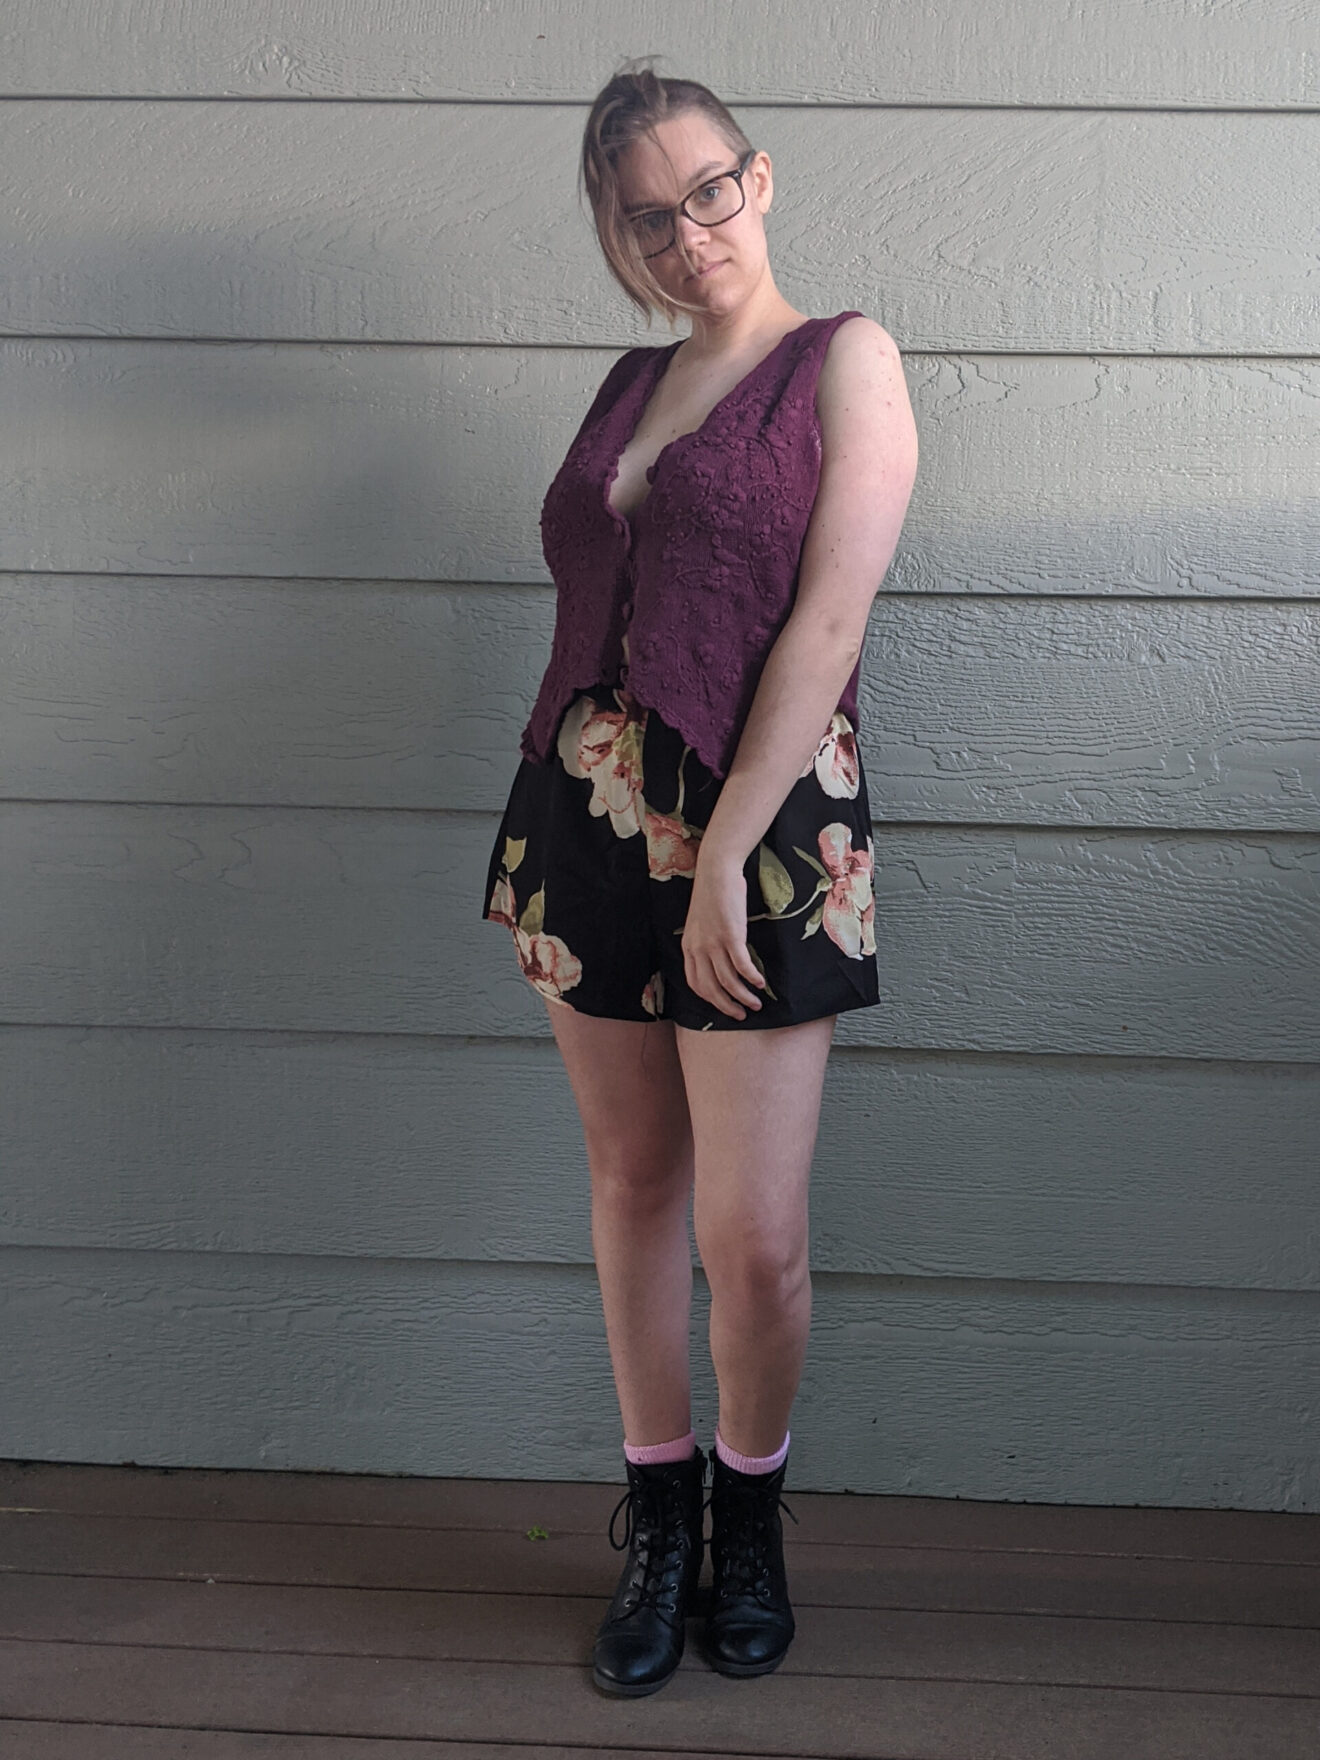 It Isnt Love If Its Selfish Alissa Ackerman Story Behind The Cloth fashion blog post Summer Mori Kei gothic bohemian witchy romantic outfit Heartbreak breakup depression love loss 4 scaled